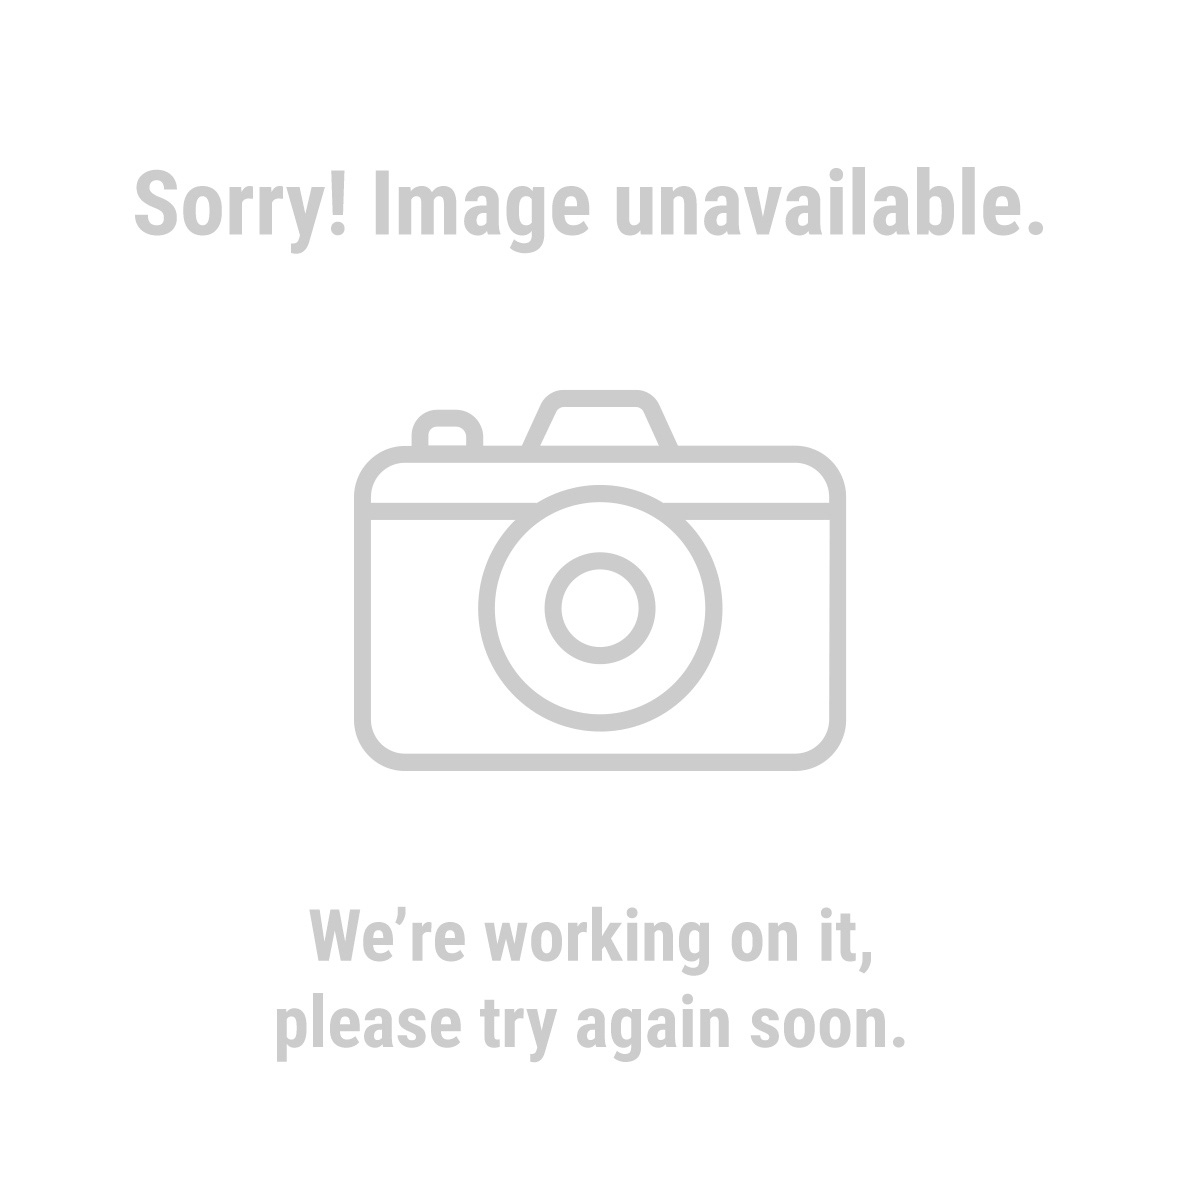 Chicago Electric Welding 68782 Variable Auto Darkening Welding Helmet with Metal Head Design